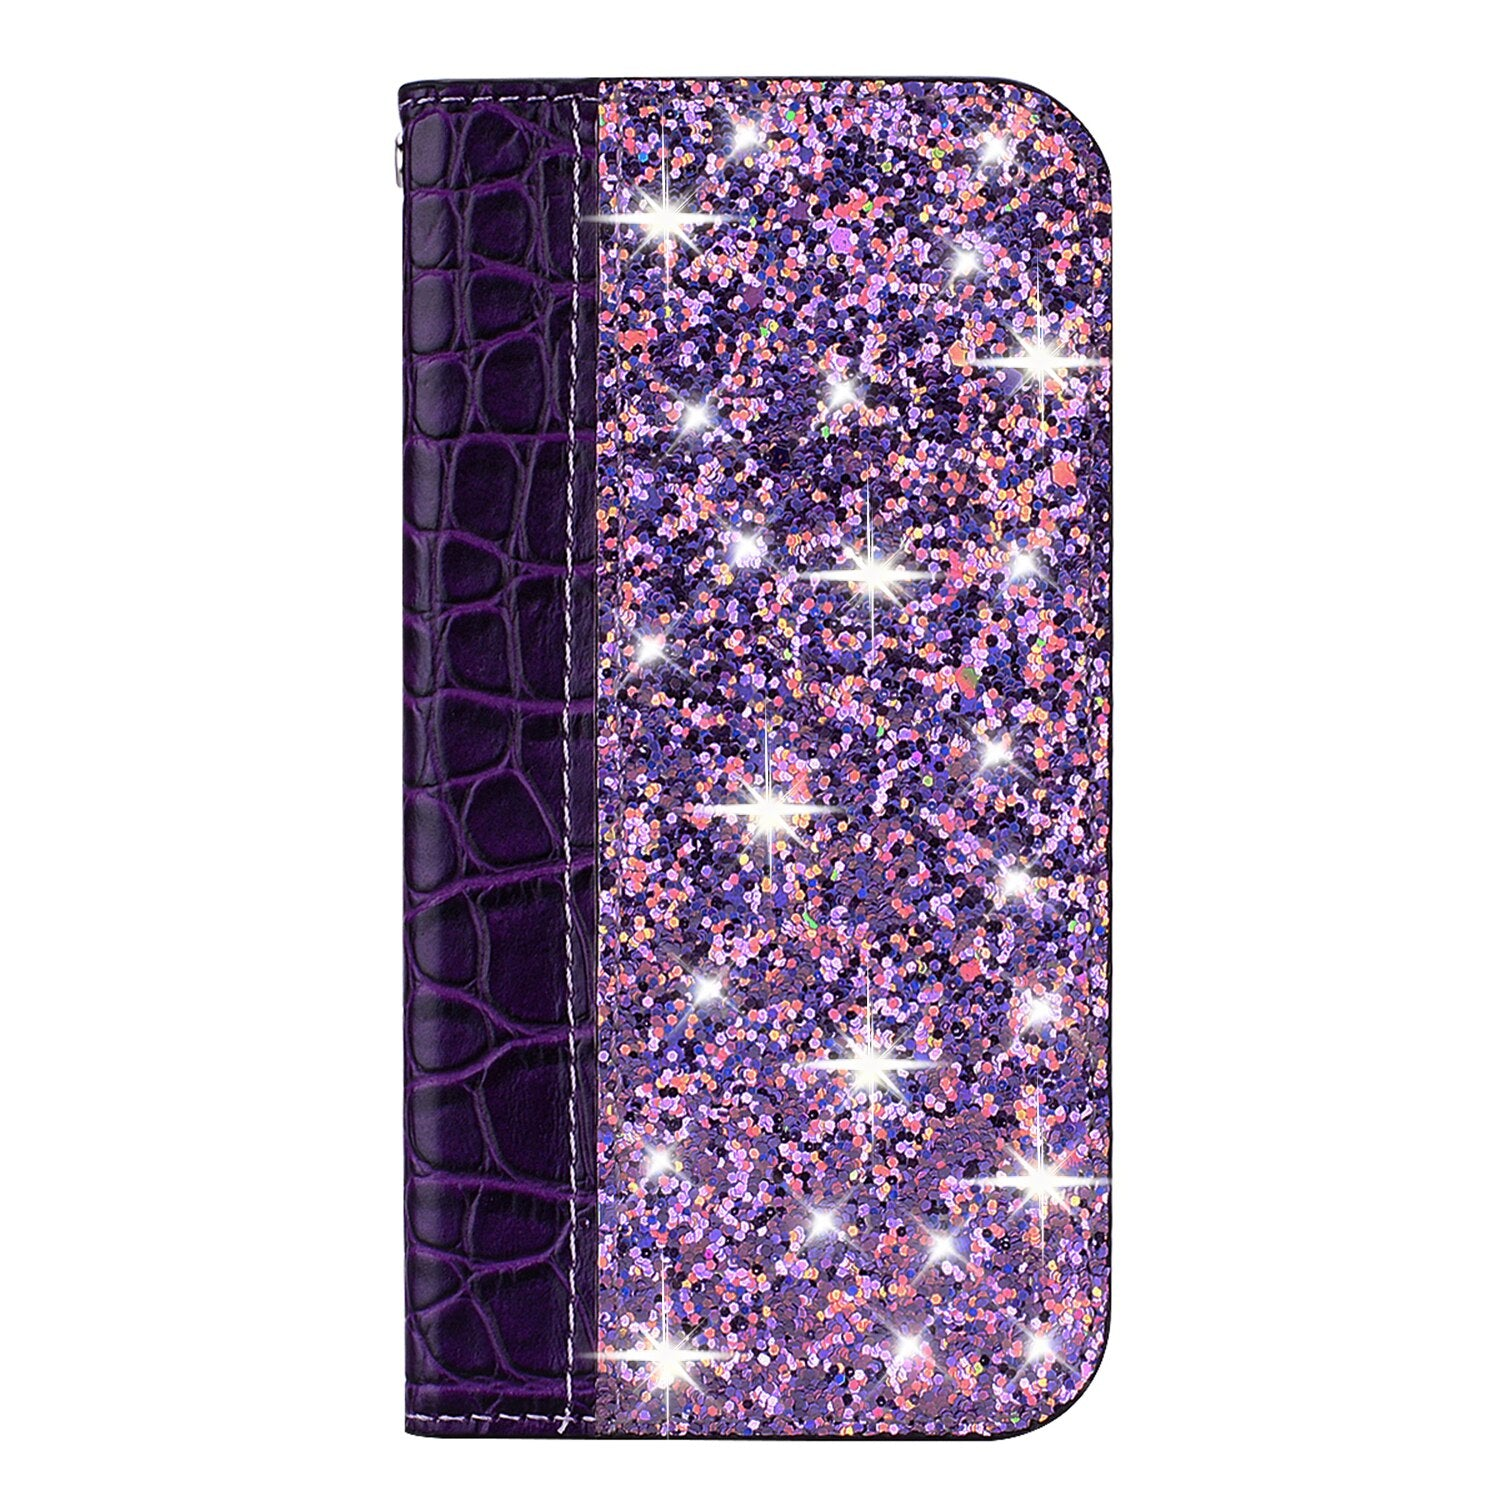 Elegant Glitter Bling Soft PU Crocodile Leather Flip Book Case For iPhone 7 8 6 6S Plus 5S Funda Case for iPhone X XR XS Max 11 Pro Max Wallet Case With Kickstand